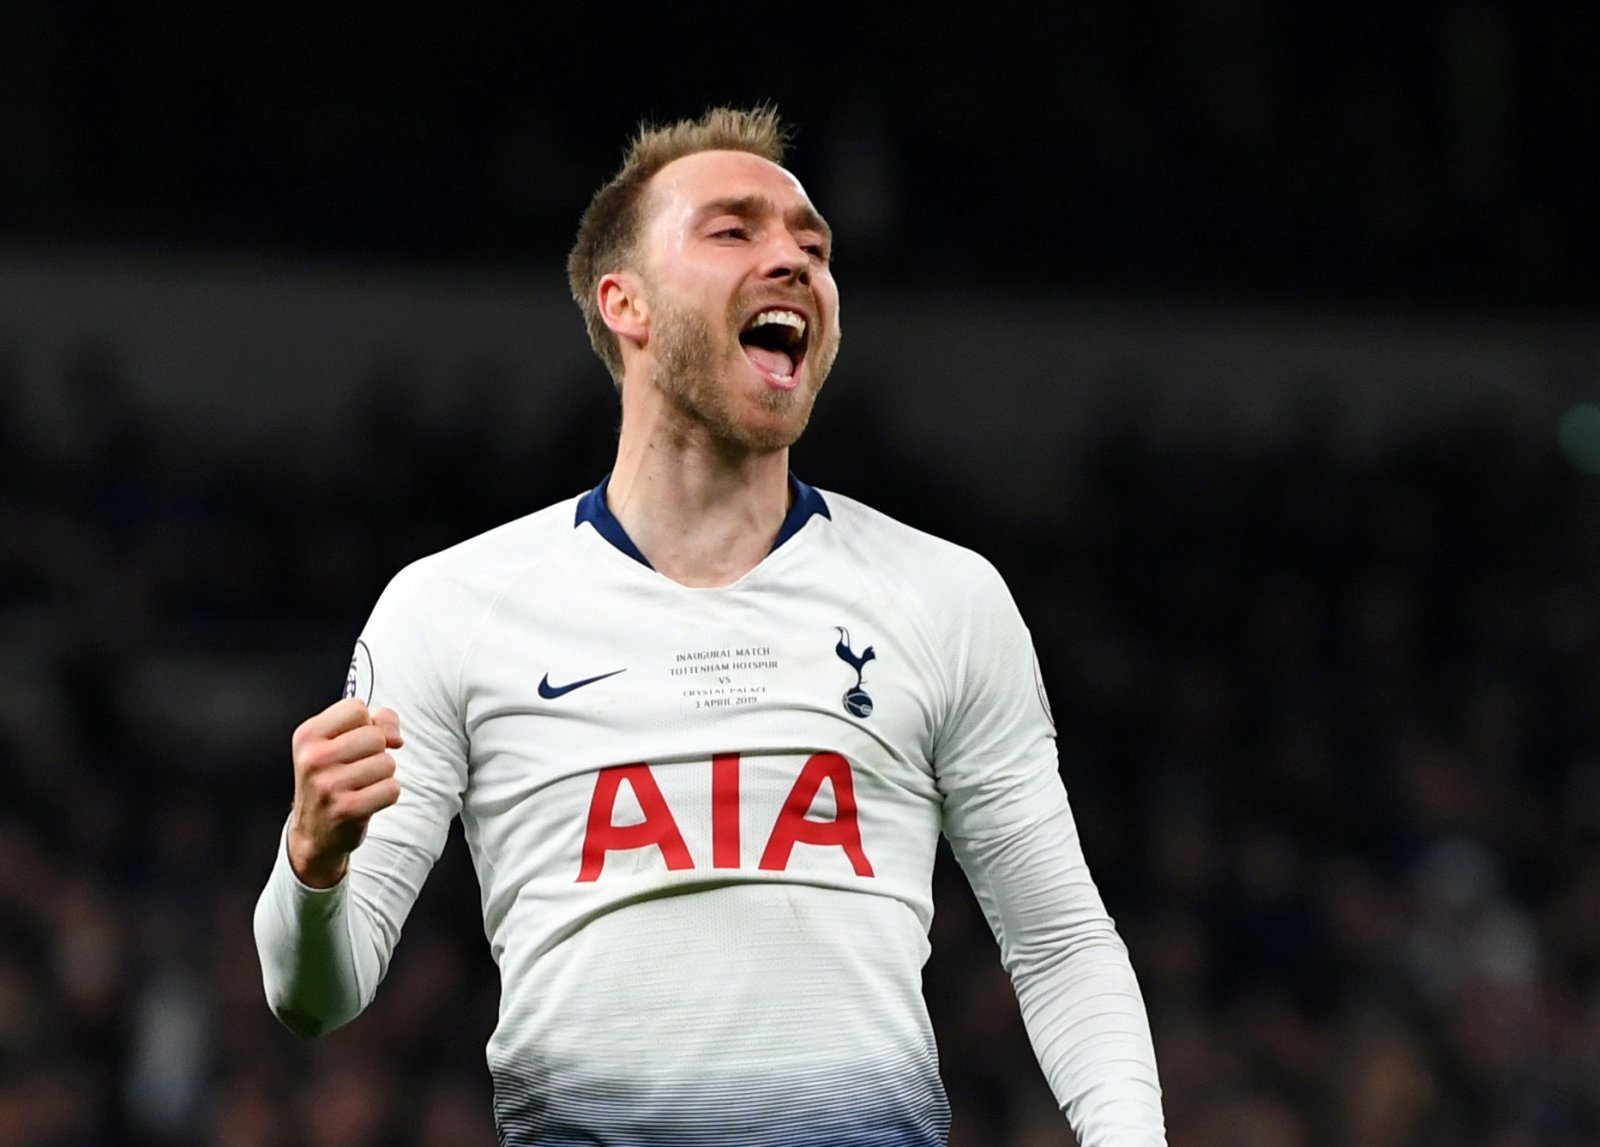 Christian Eriksen wants Real Madrid move as relationship with Tottenham board is broken